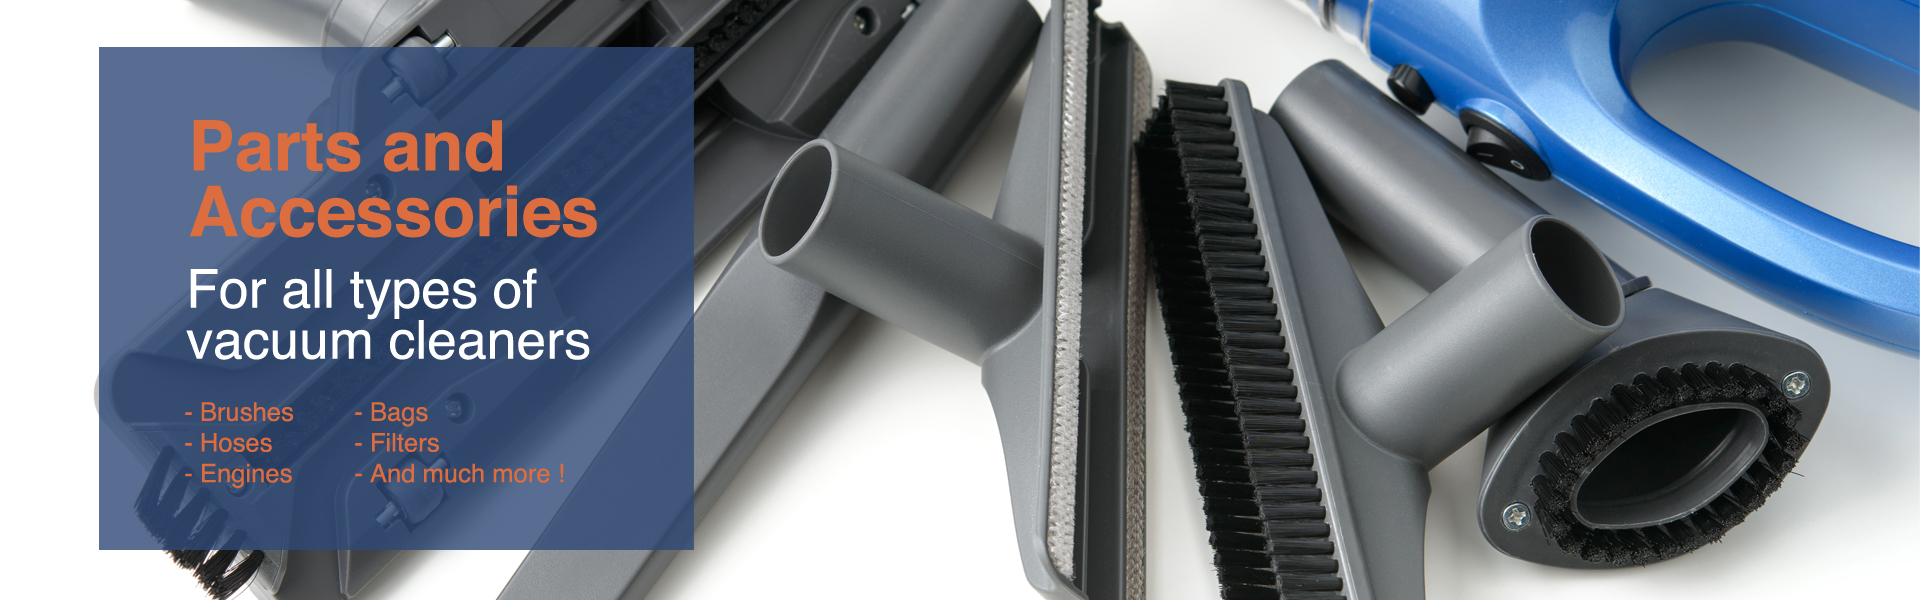 aspirateurs-samson-vacuums-residential-commercial-central-repairs-1920x600-03